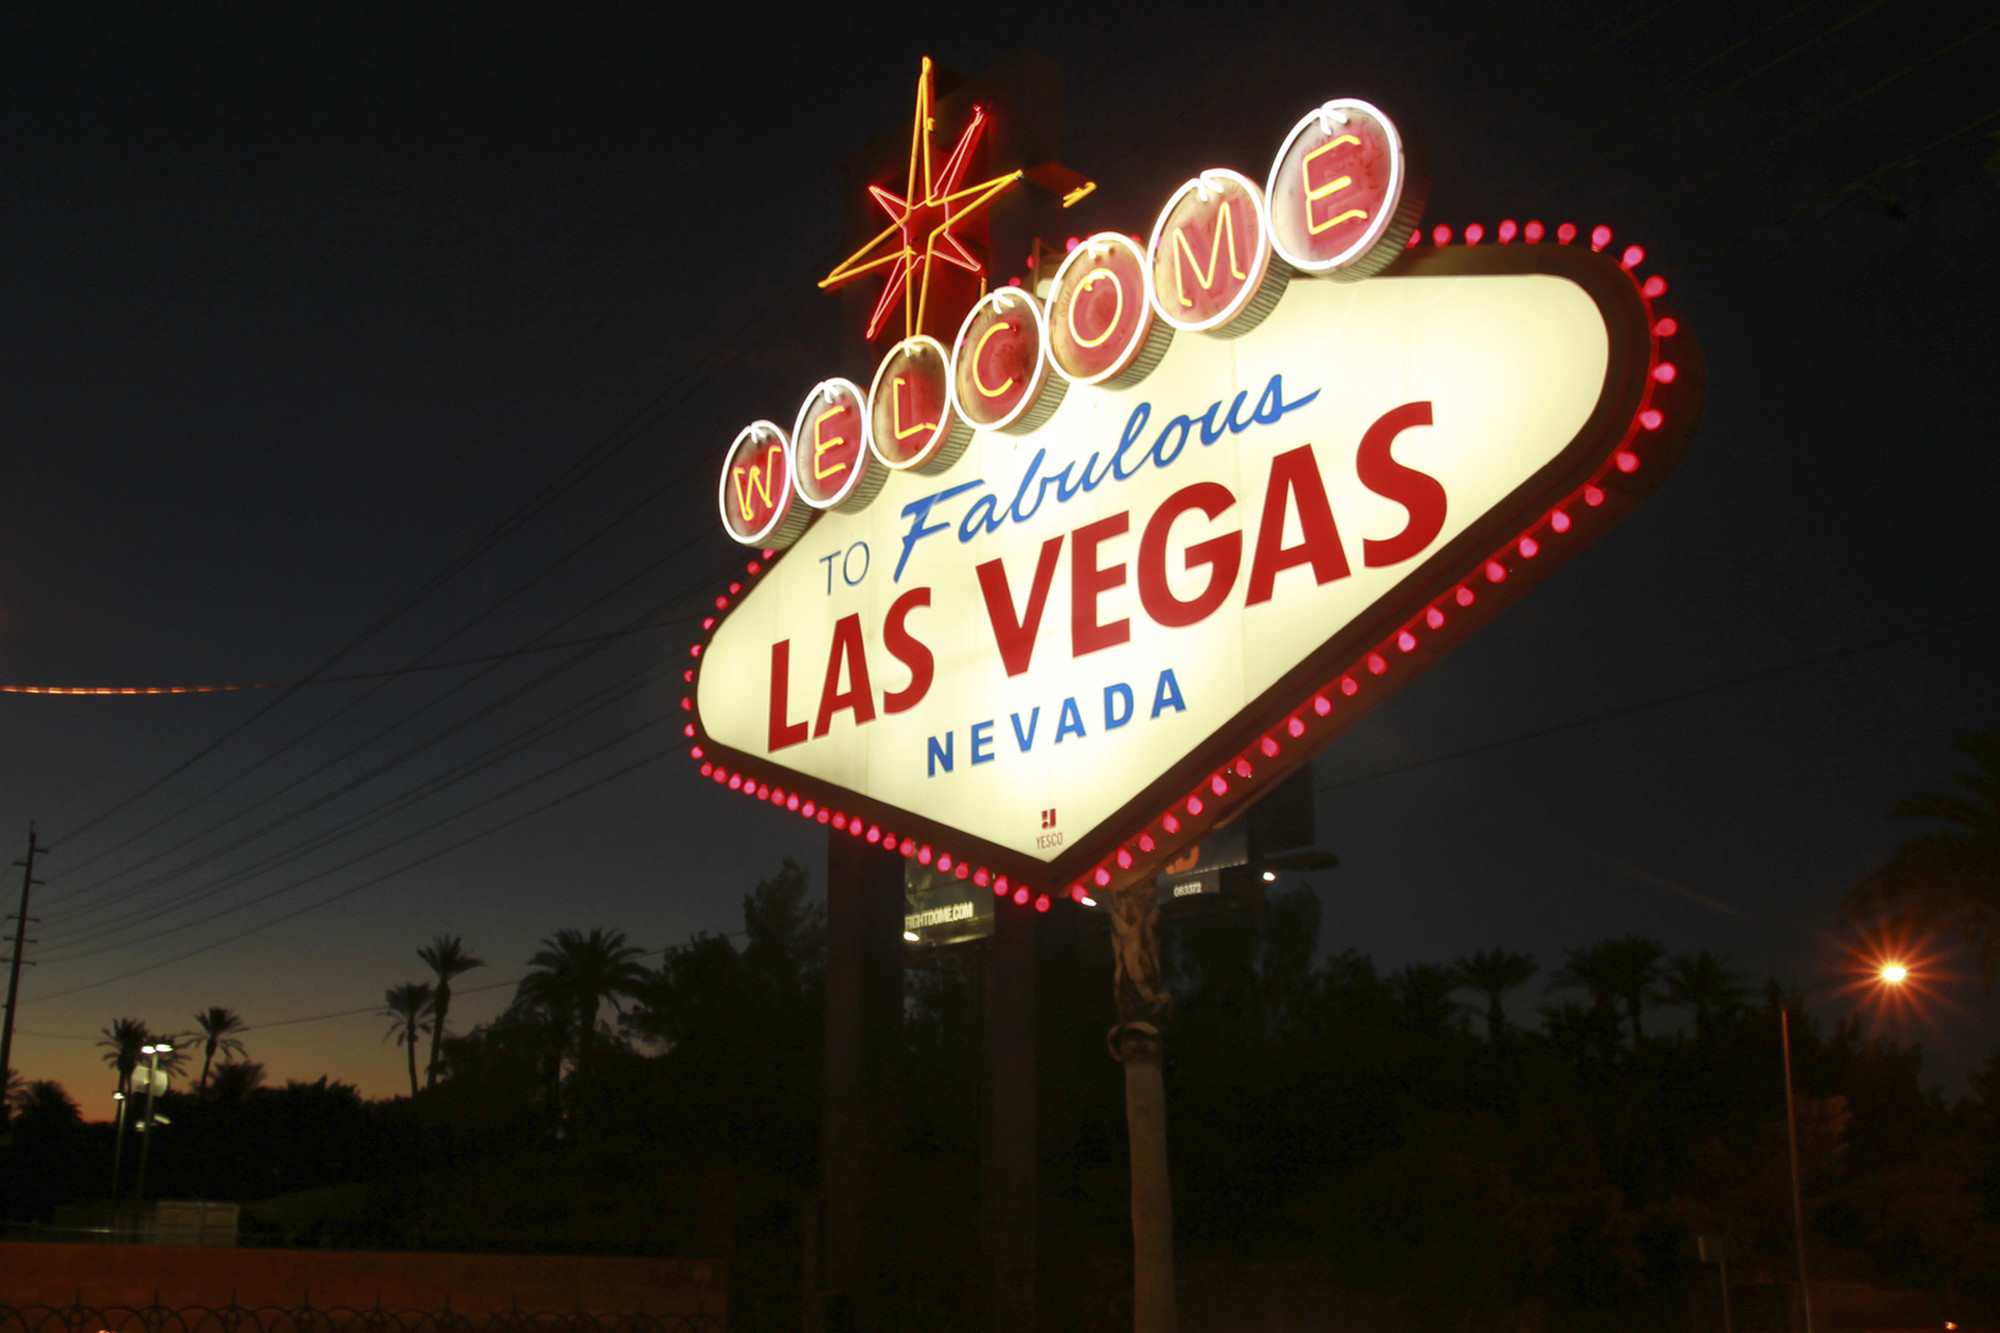 Woman who designed 'Welcome to Las Vegas' sign dies at 91